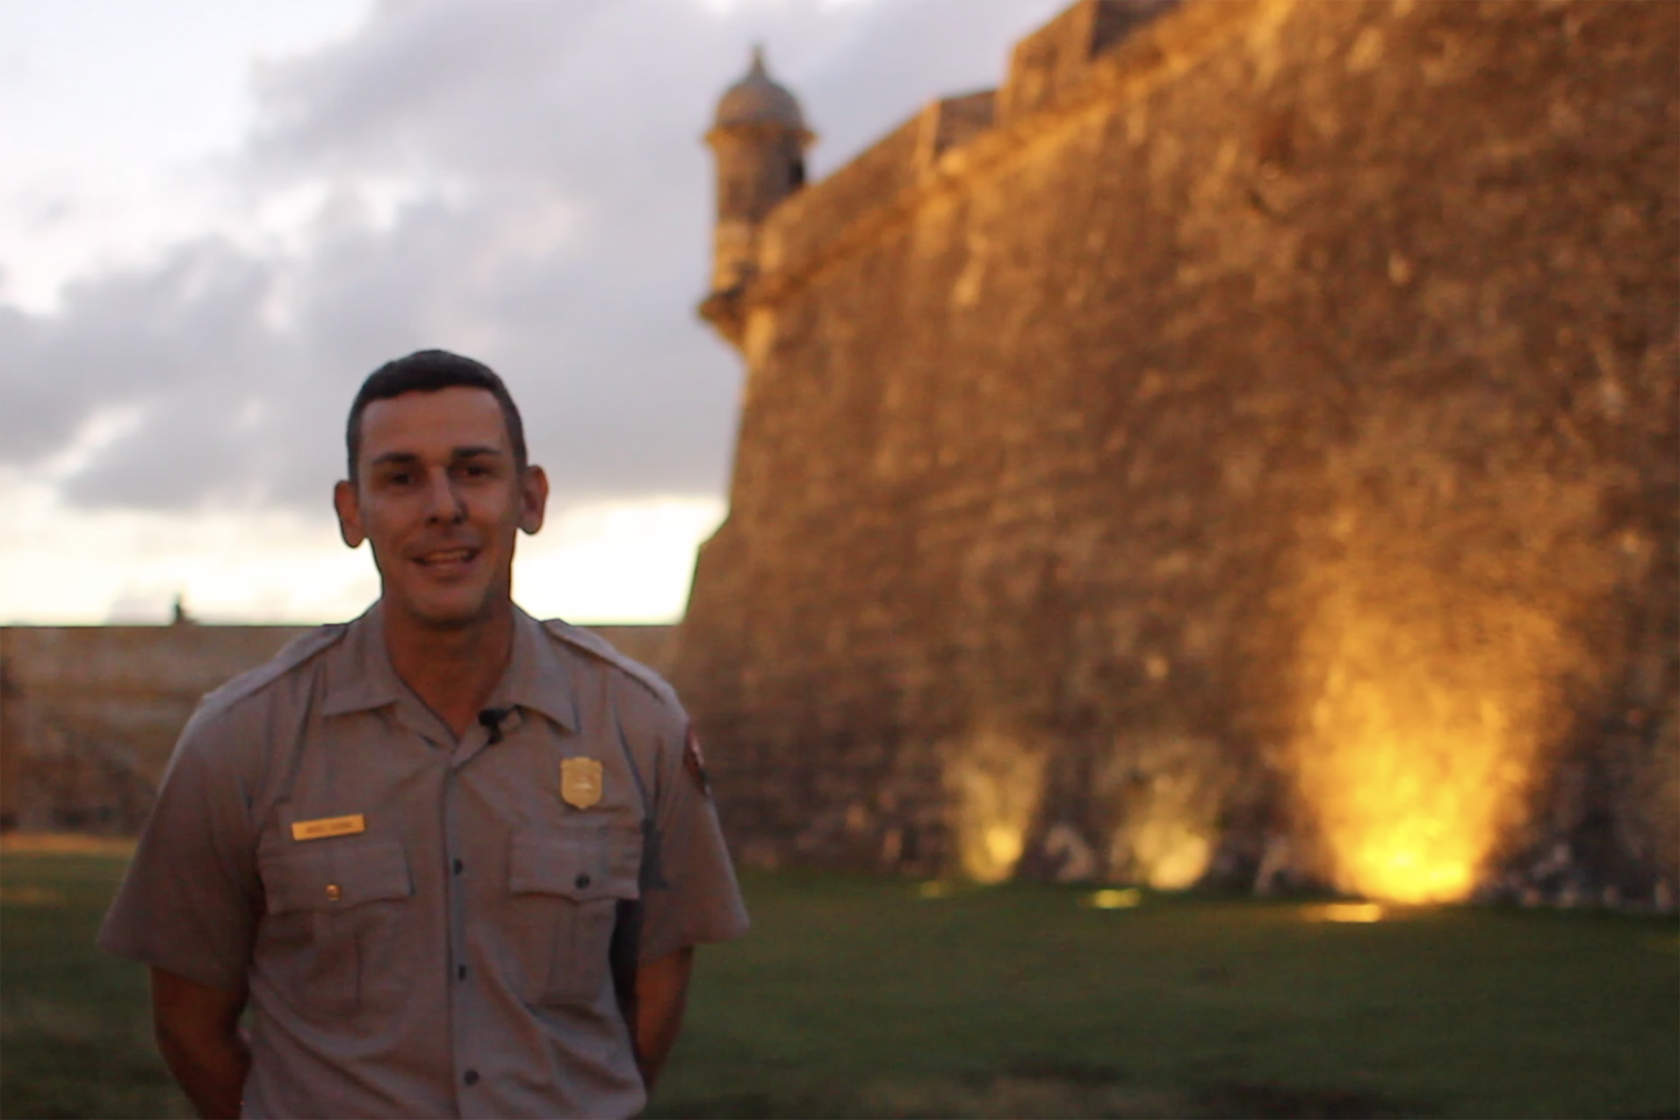 Special Permits Coordinator Angel Cuevas stands outside an illuminated San Juan National Historic Site